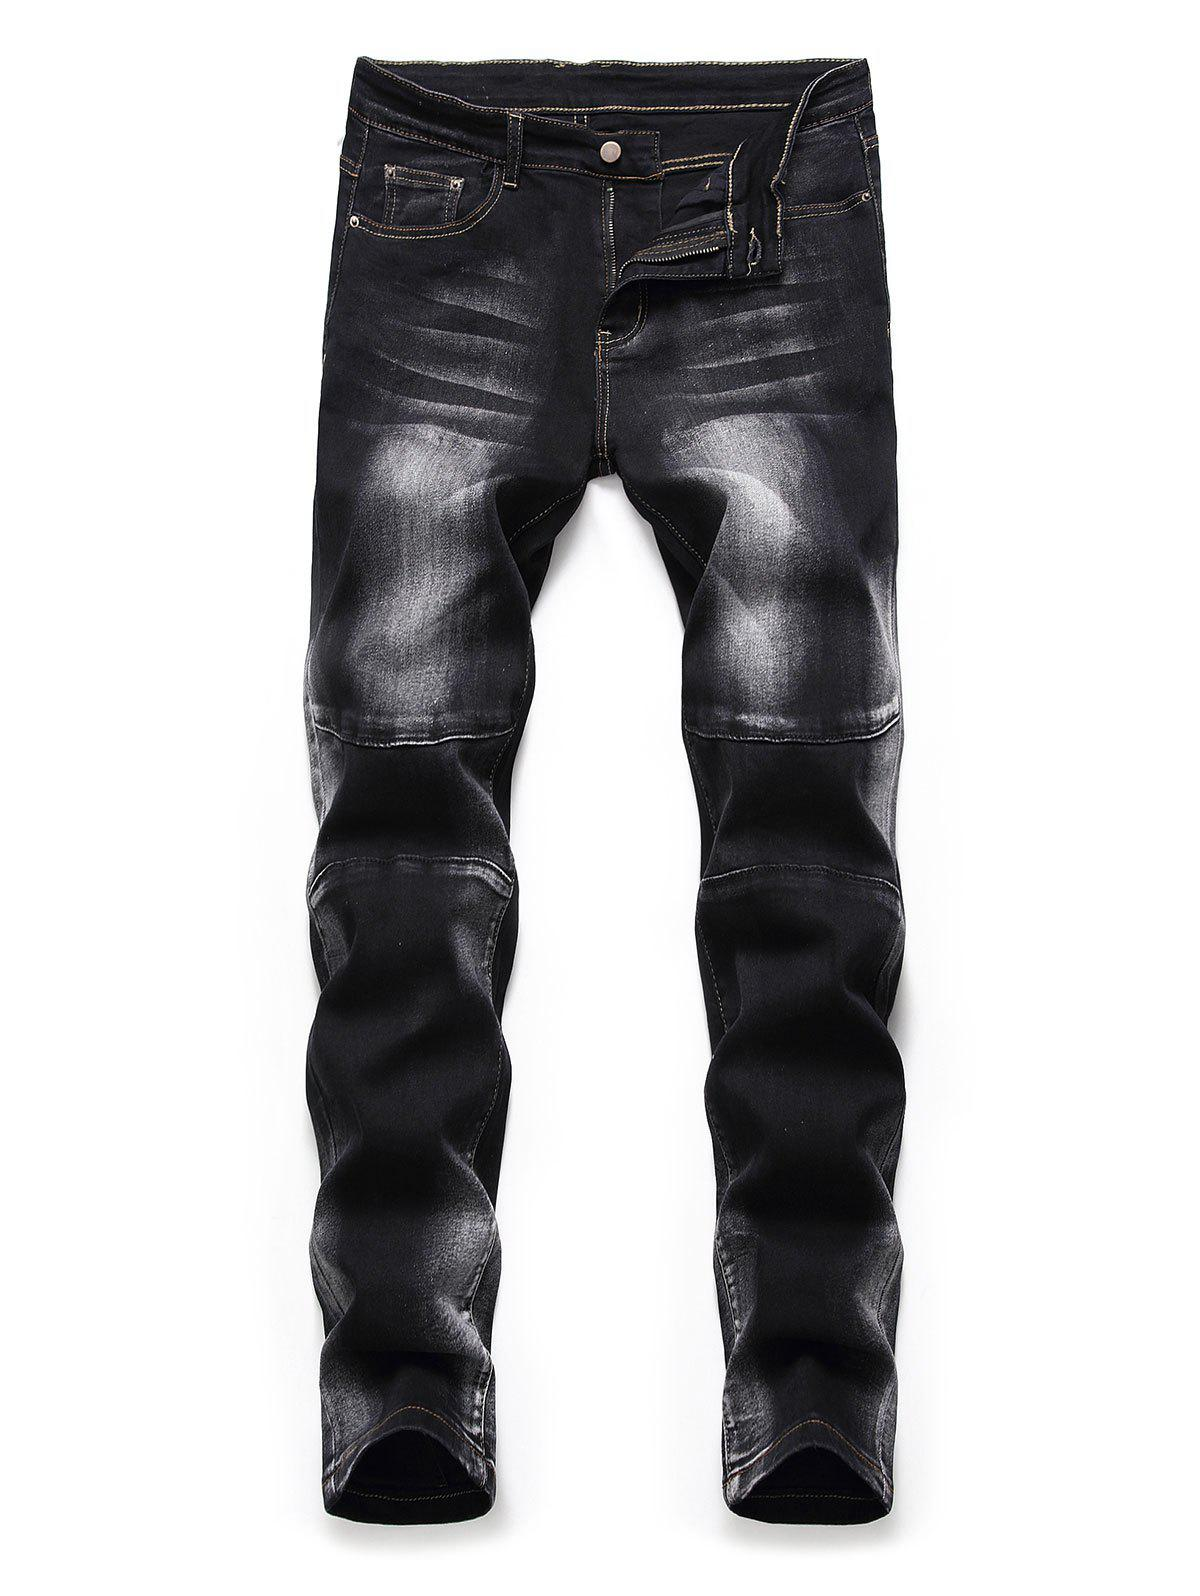 Casual Printed Zipper Fly Jeans - BLACK 36